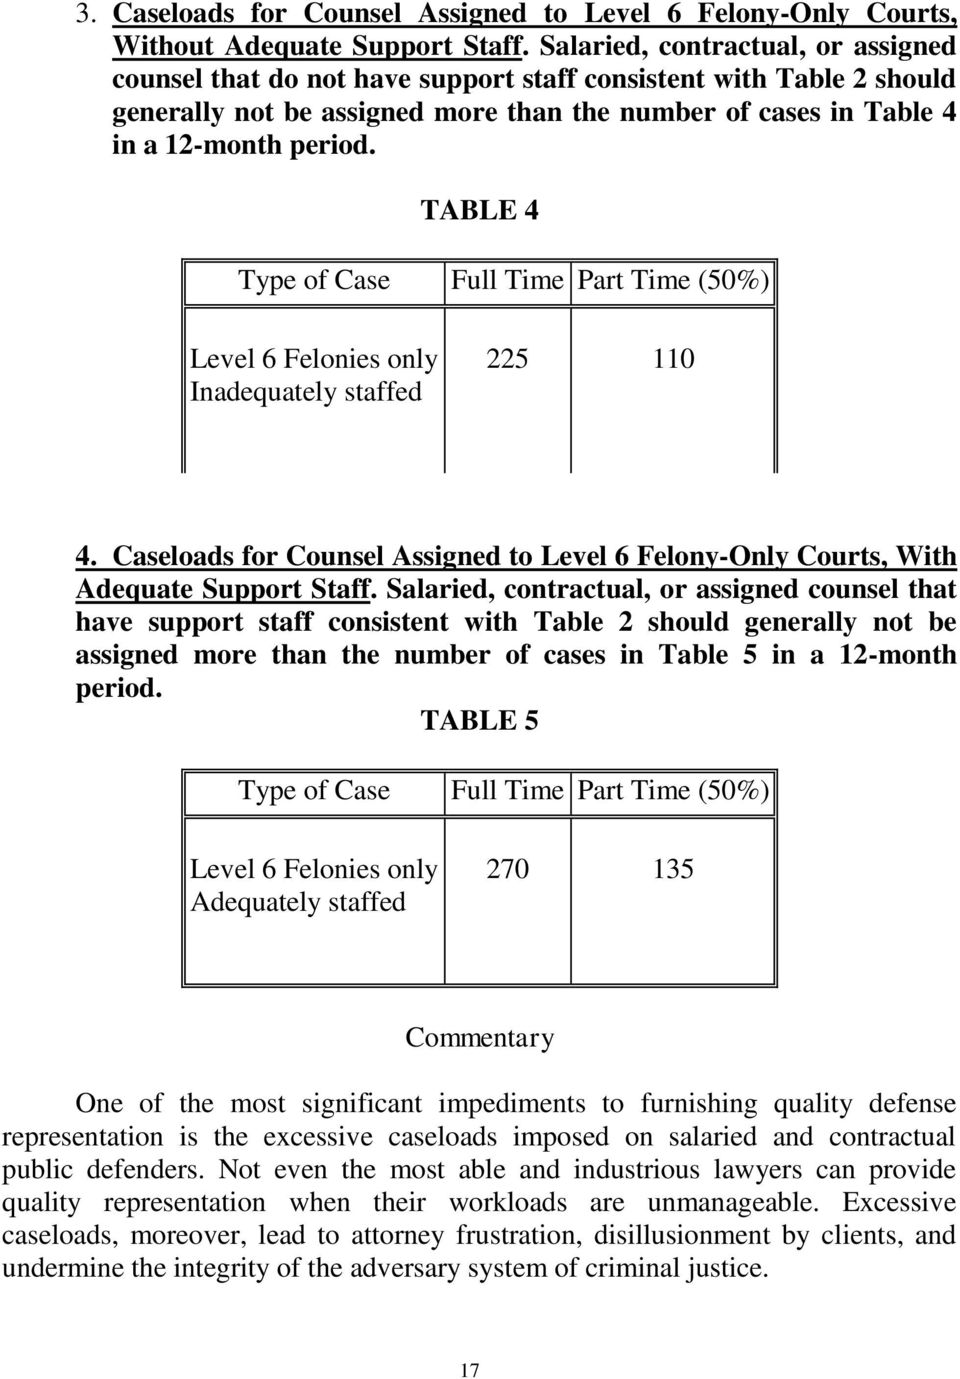 TABLE 4 Type of Case Full Time Part Time (50%) Level 6 Felonies only Inadequately staffed 225 110 4. Caseloads for Counsel Assigned to Level 6 Felony-Only Courts, With Adequate Support Staff.